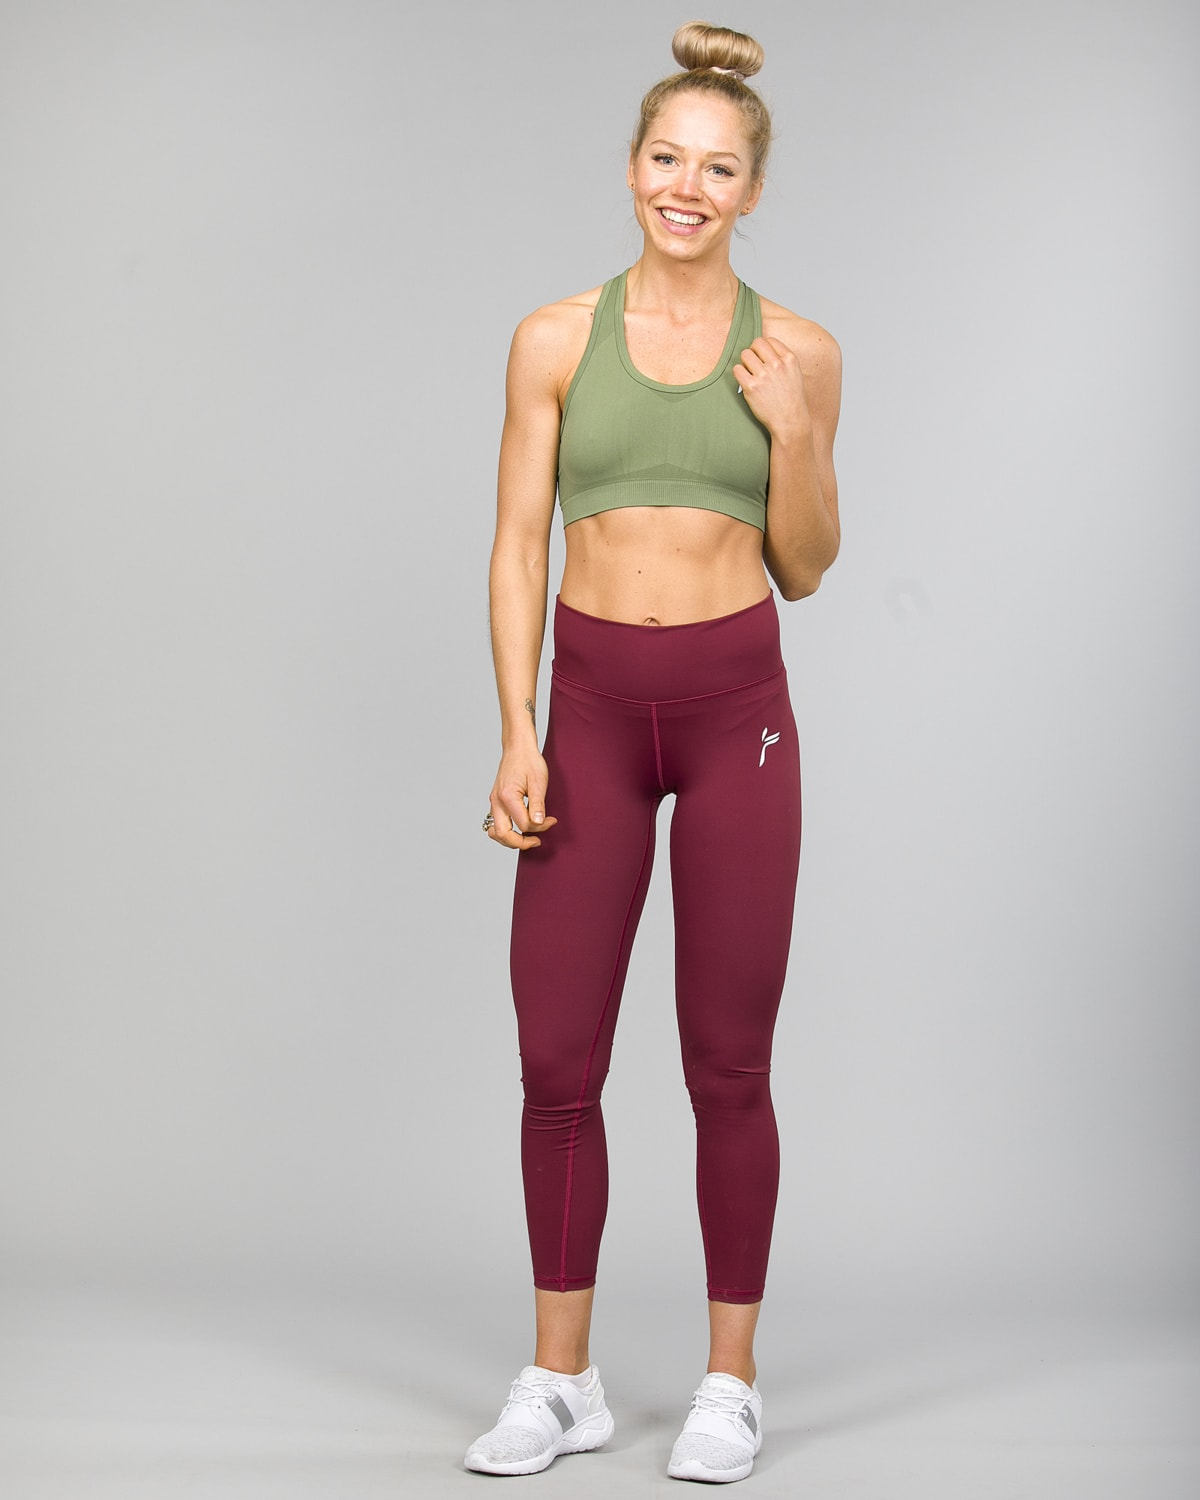 Famme Essential High Waist Legging – Tawny Port ehwt-tp and Drop It Sports Bra Army green disb-ag